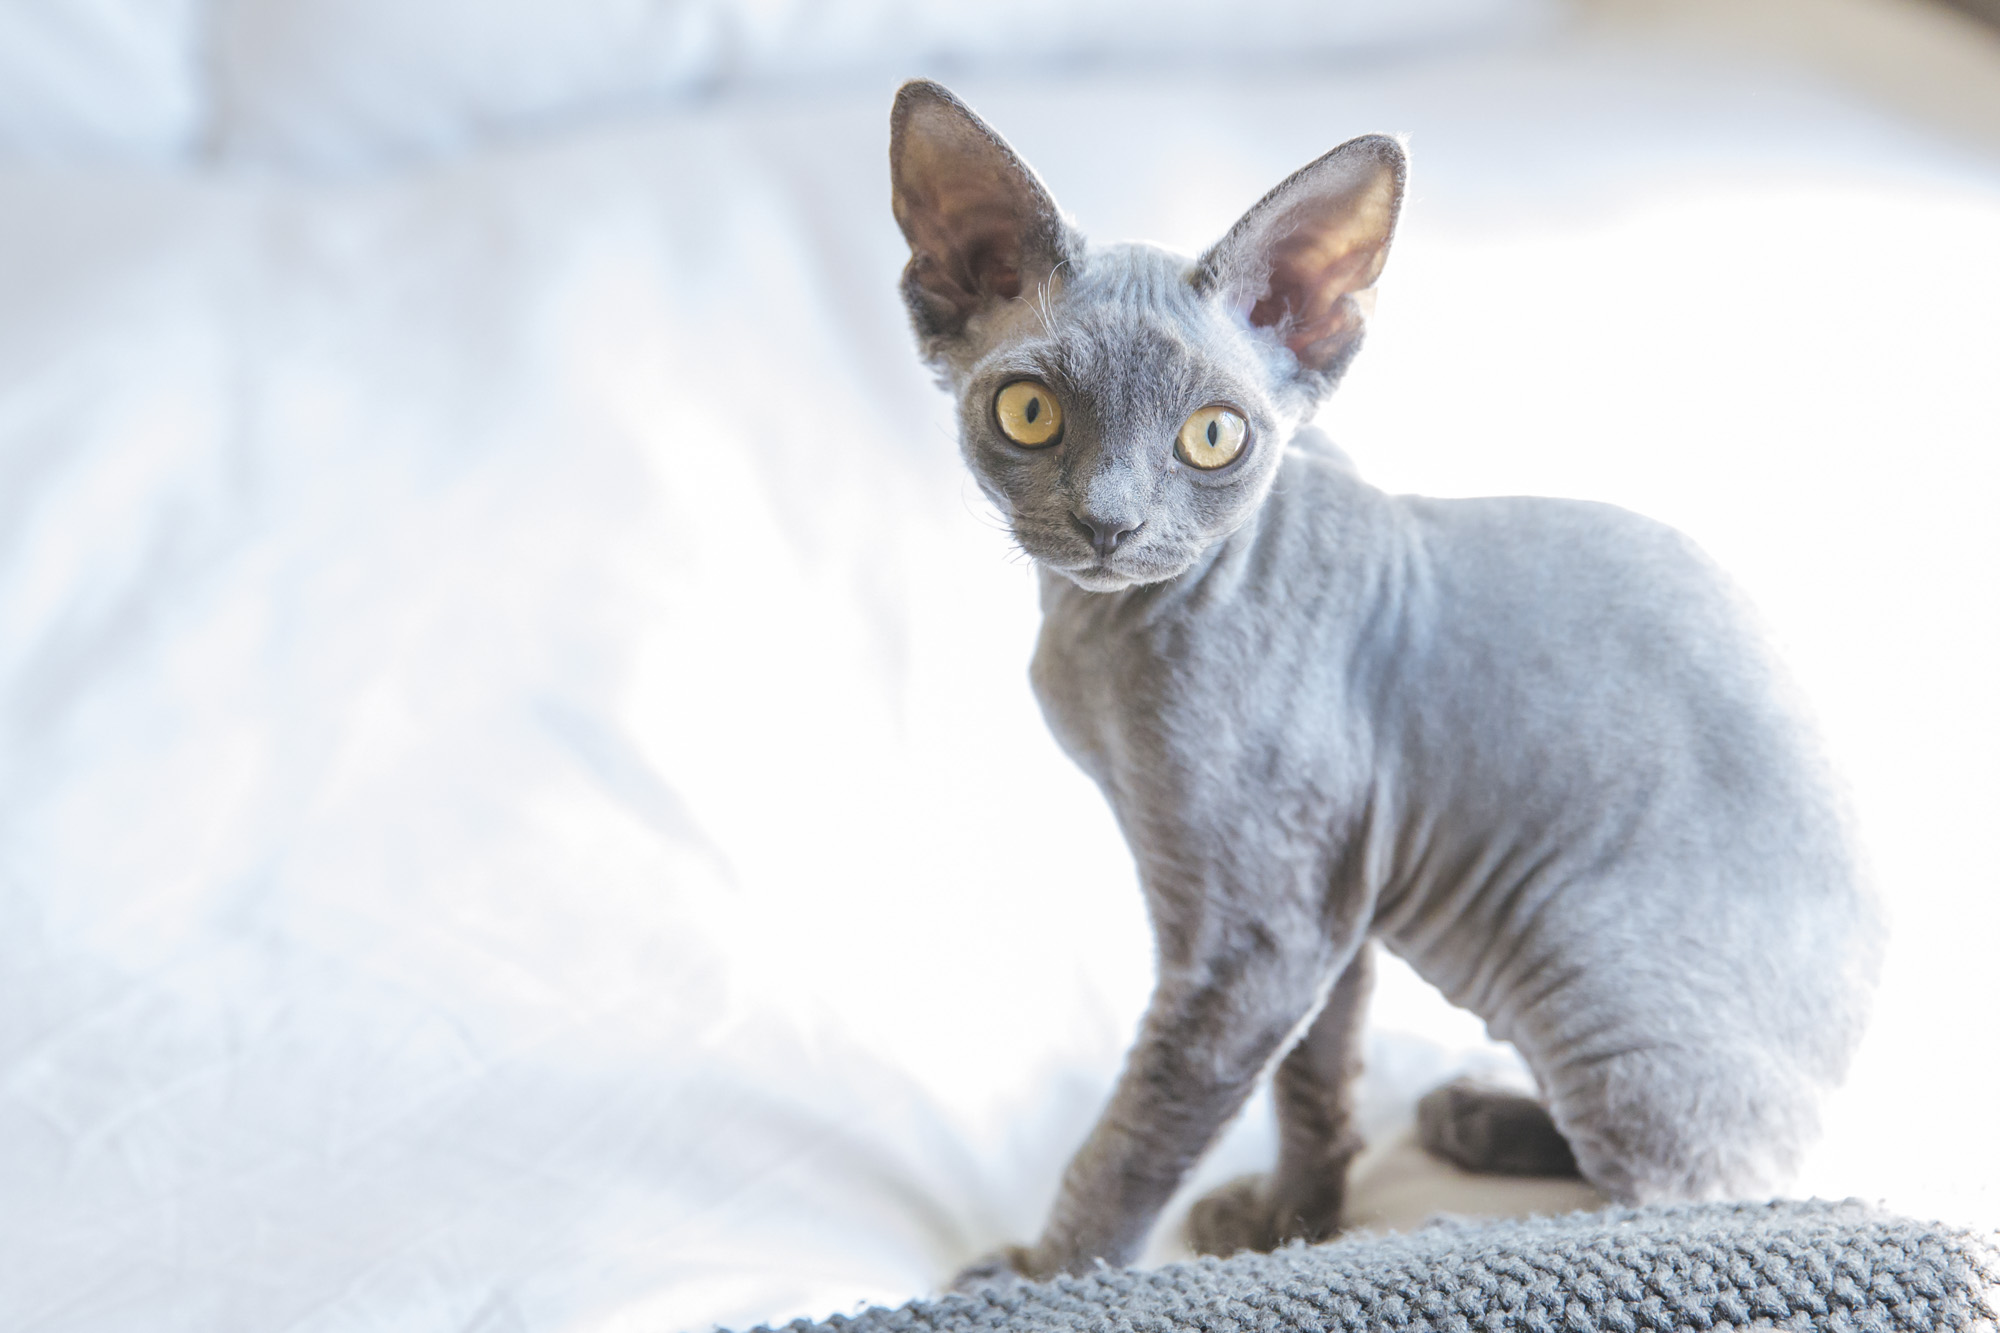 Meet Stevie! Stevie is named after the beautiful QUEEN that is Stevie Nicks and her rockstar flair and amazing curly hair! Stevie is an 18 week old Devon Rex which is a very unique breed where the cats act like dogs (no seriously, google it). Stevie loves meeting new people, playing fetch and following her human parents around. Stevie likes anything that crinkles like chip bags, toys and wrappers, face rubs and baths! She dislikes bicycles, blenders and pirate cannons. You can follow Stevie's journey through life on instagram @steviethedevonrex.{ }The Seattle RUFFined Spotlight is a weekly profile of local pets living and loving life in the PNW. If you or someone you know has a pet you'd like featured, email us at hello@seattlerefined.com or tag #SeattleRUFFined and your furbaby could be the next spotlighted! (Image: Sunita Martini / Seattle Refined).